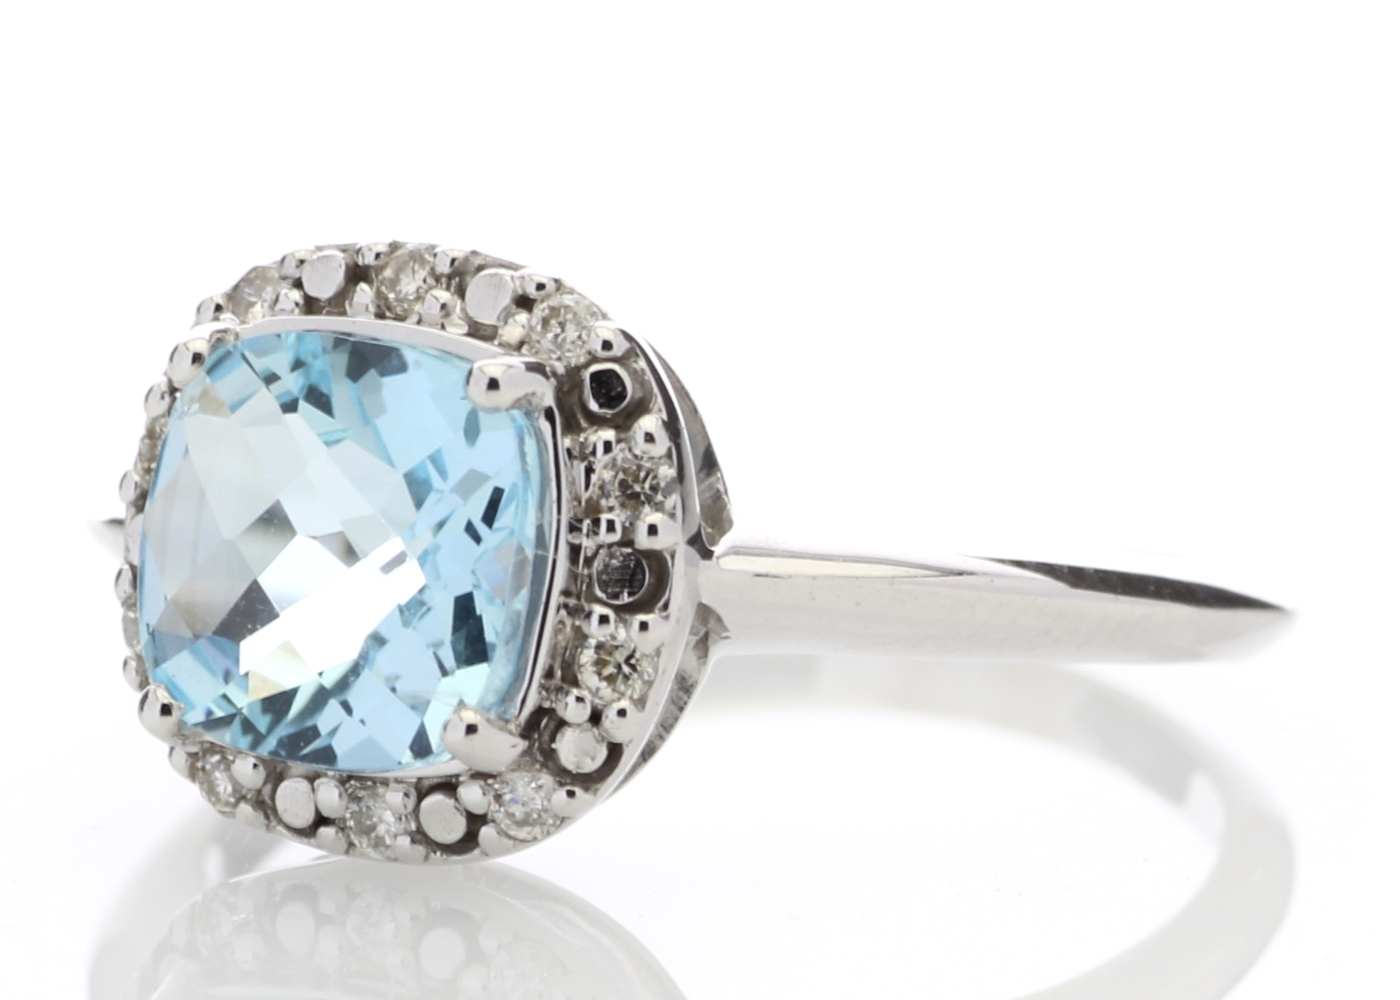 Lot 56 - 9ct White Gold Diamond And Blue Topaz Ring